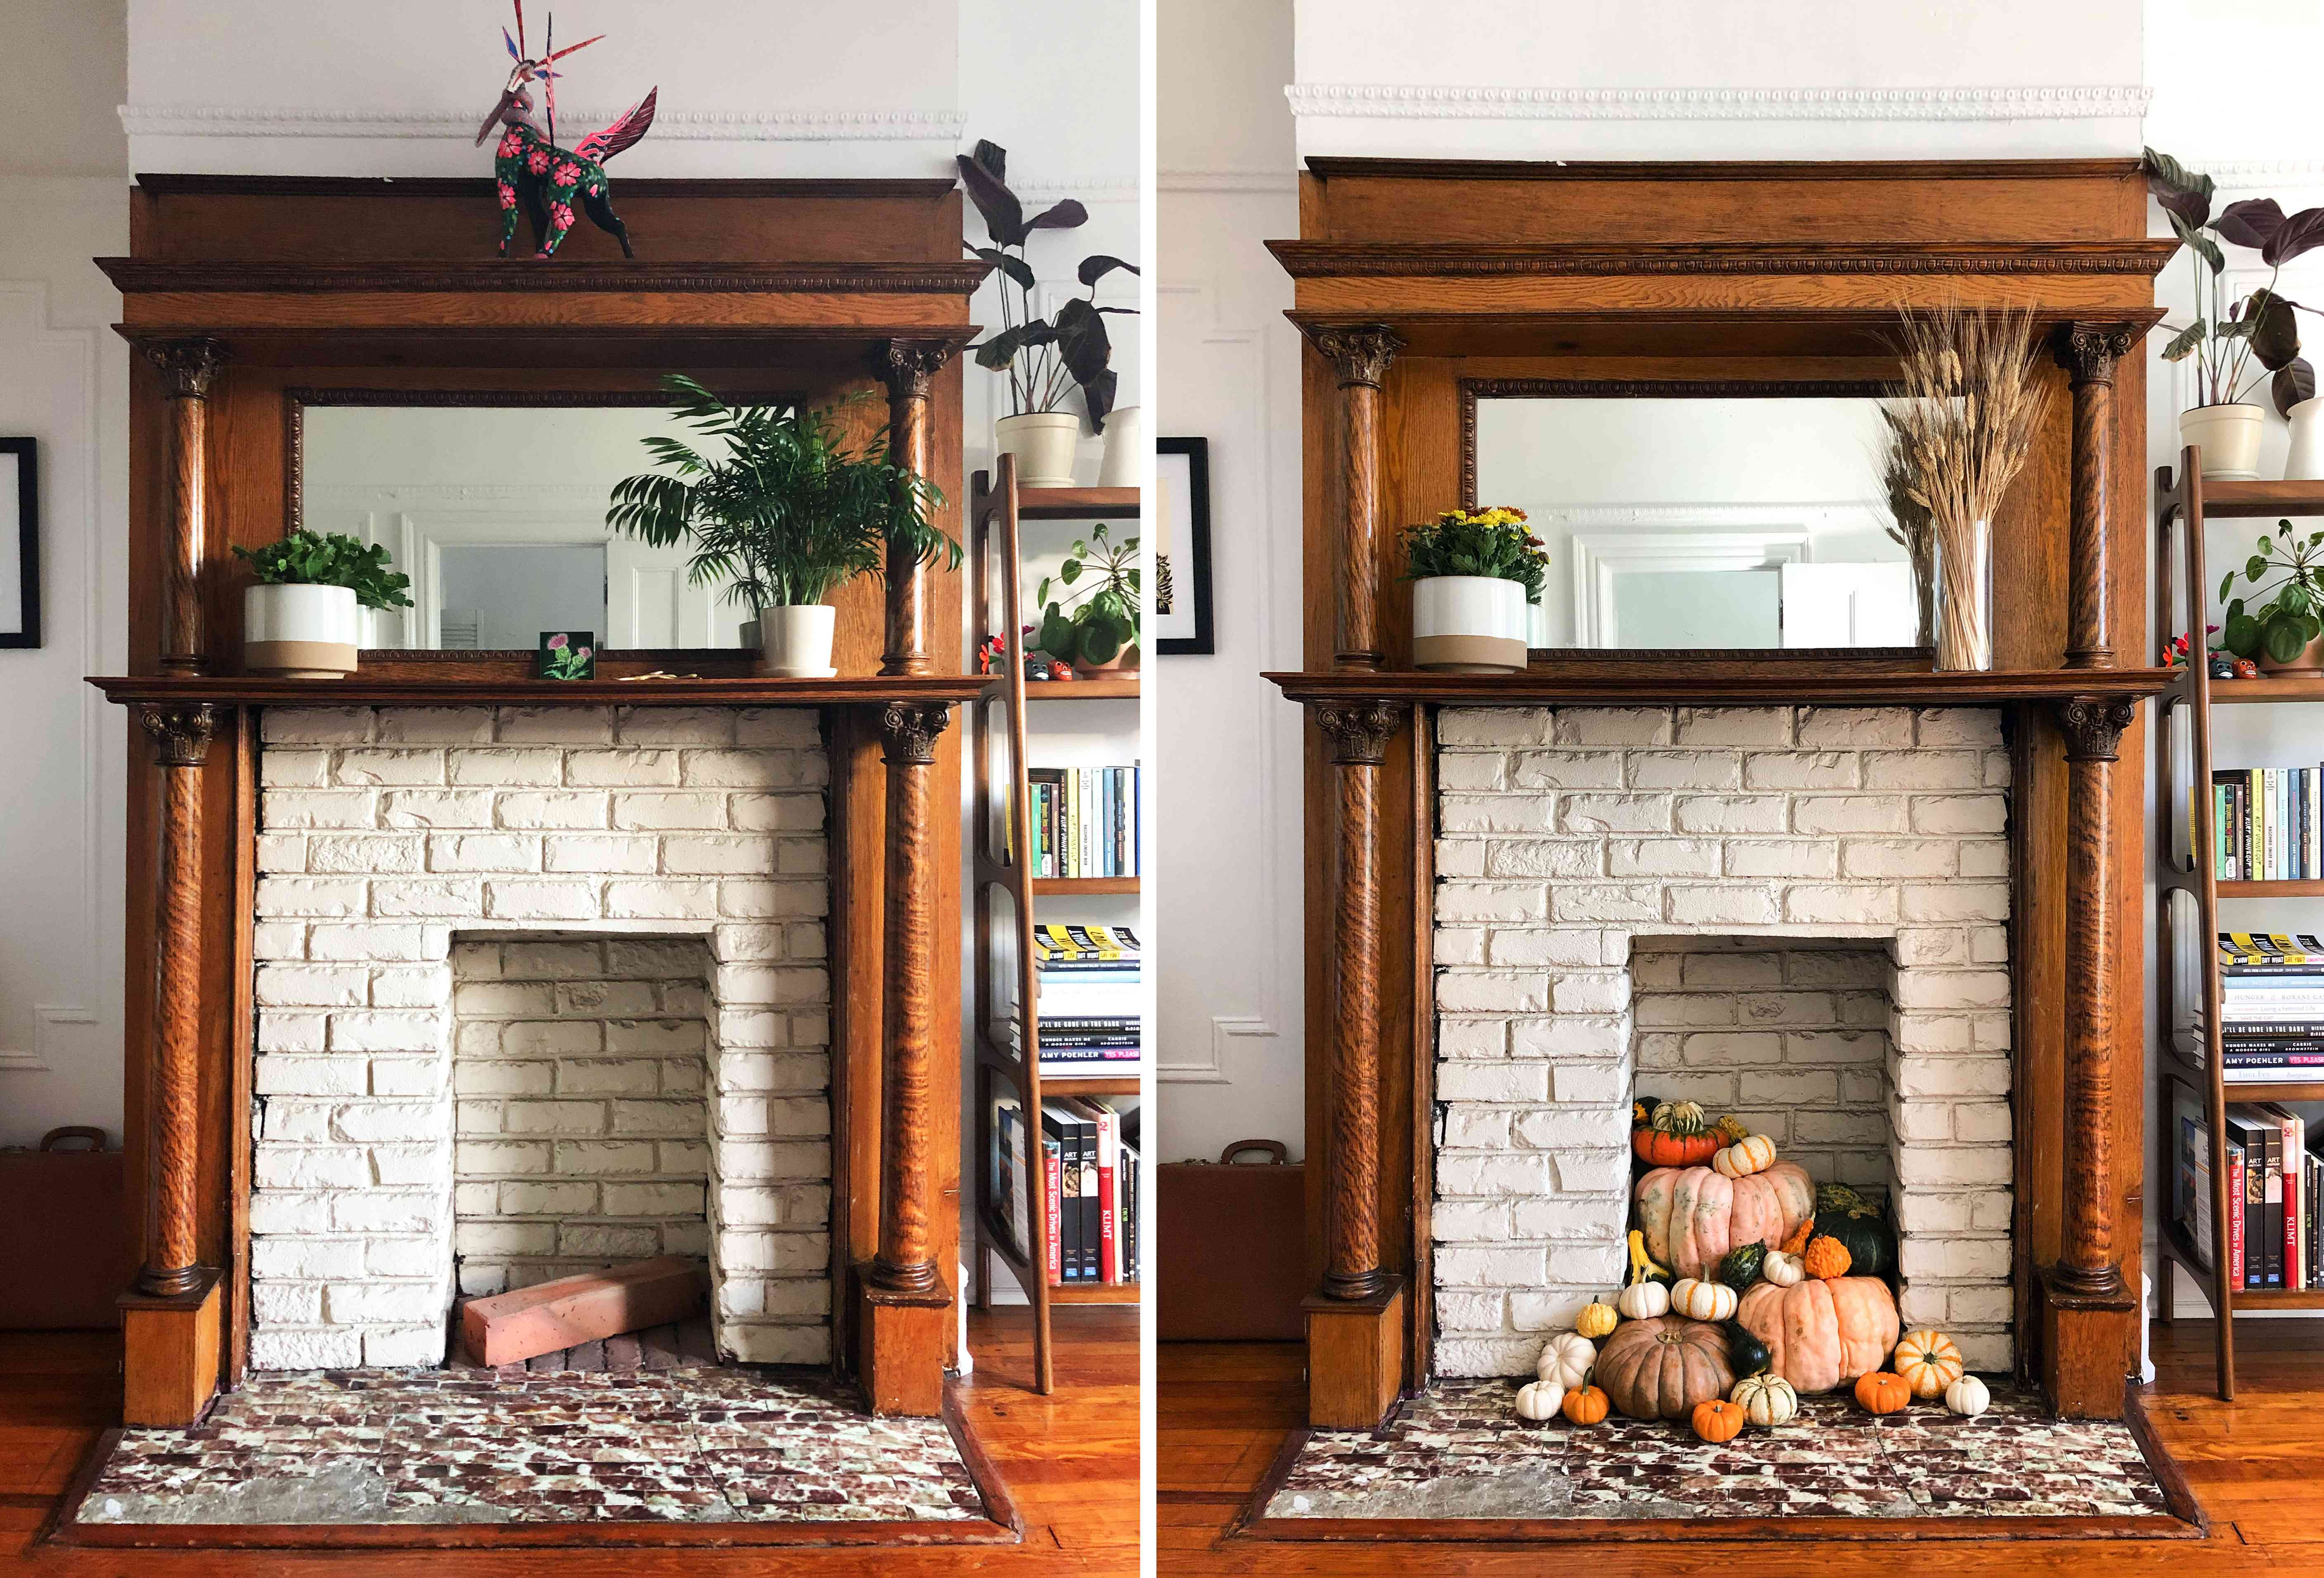 Before and after photos of a white brick fireplace decorated for fall